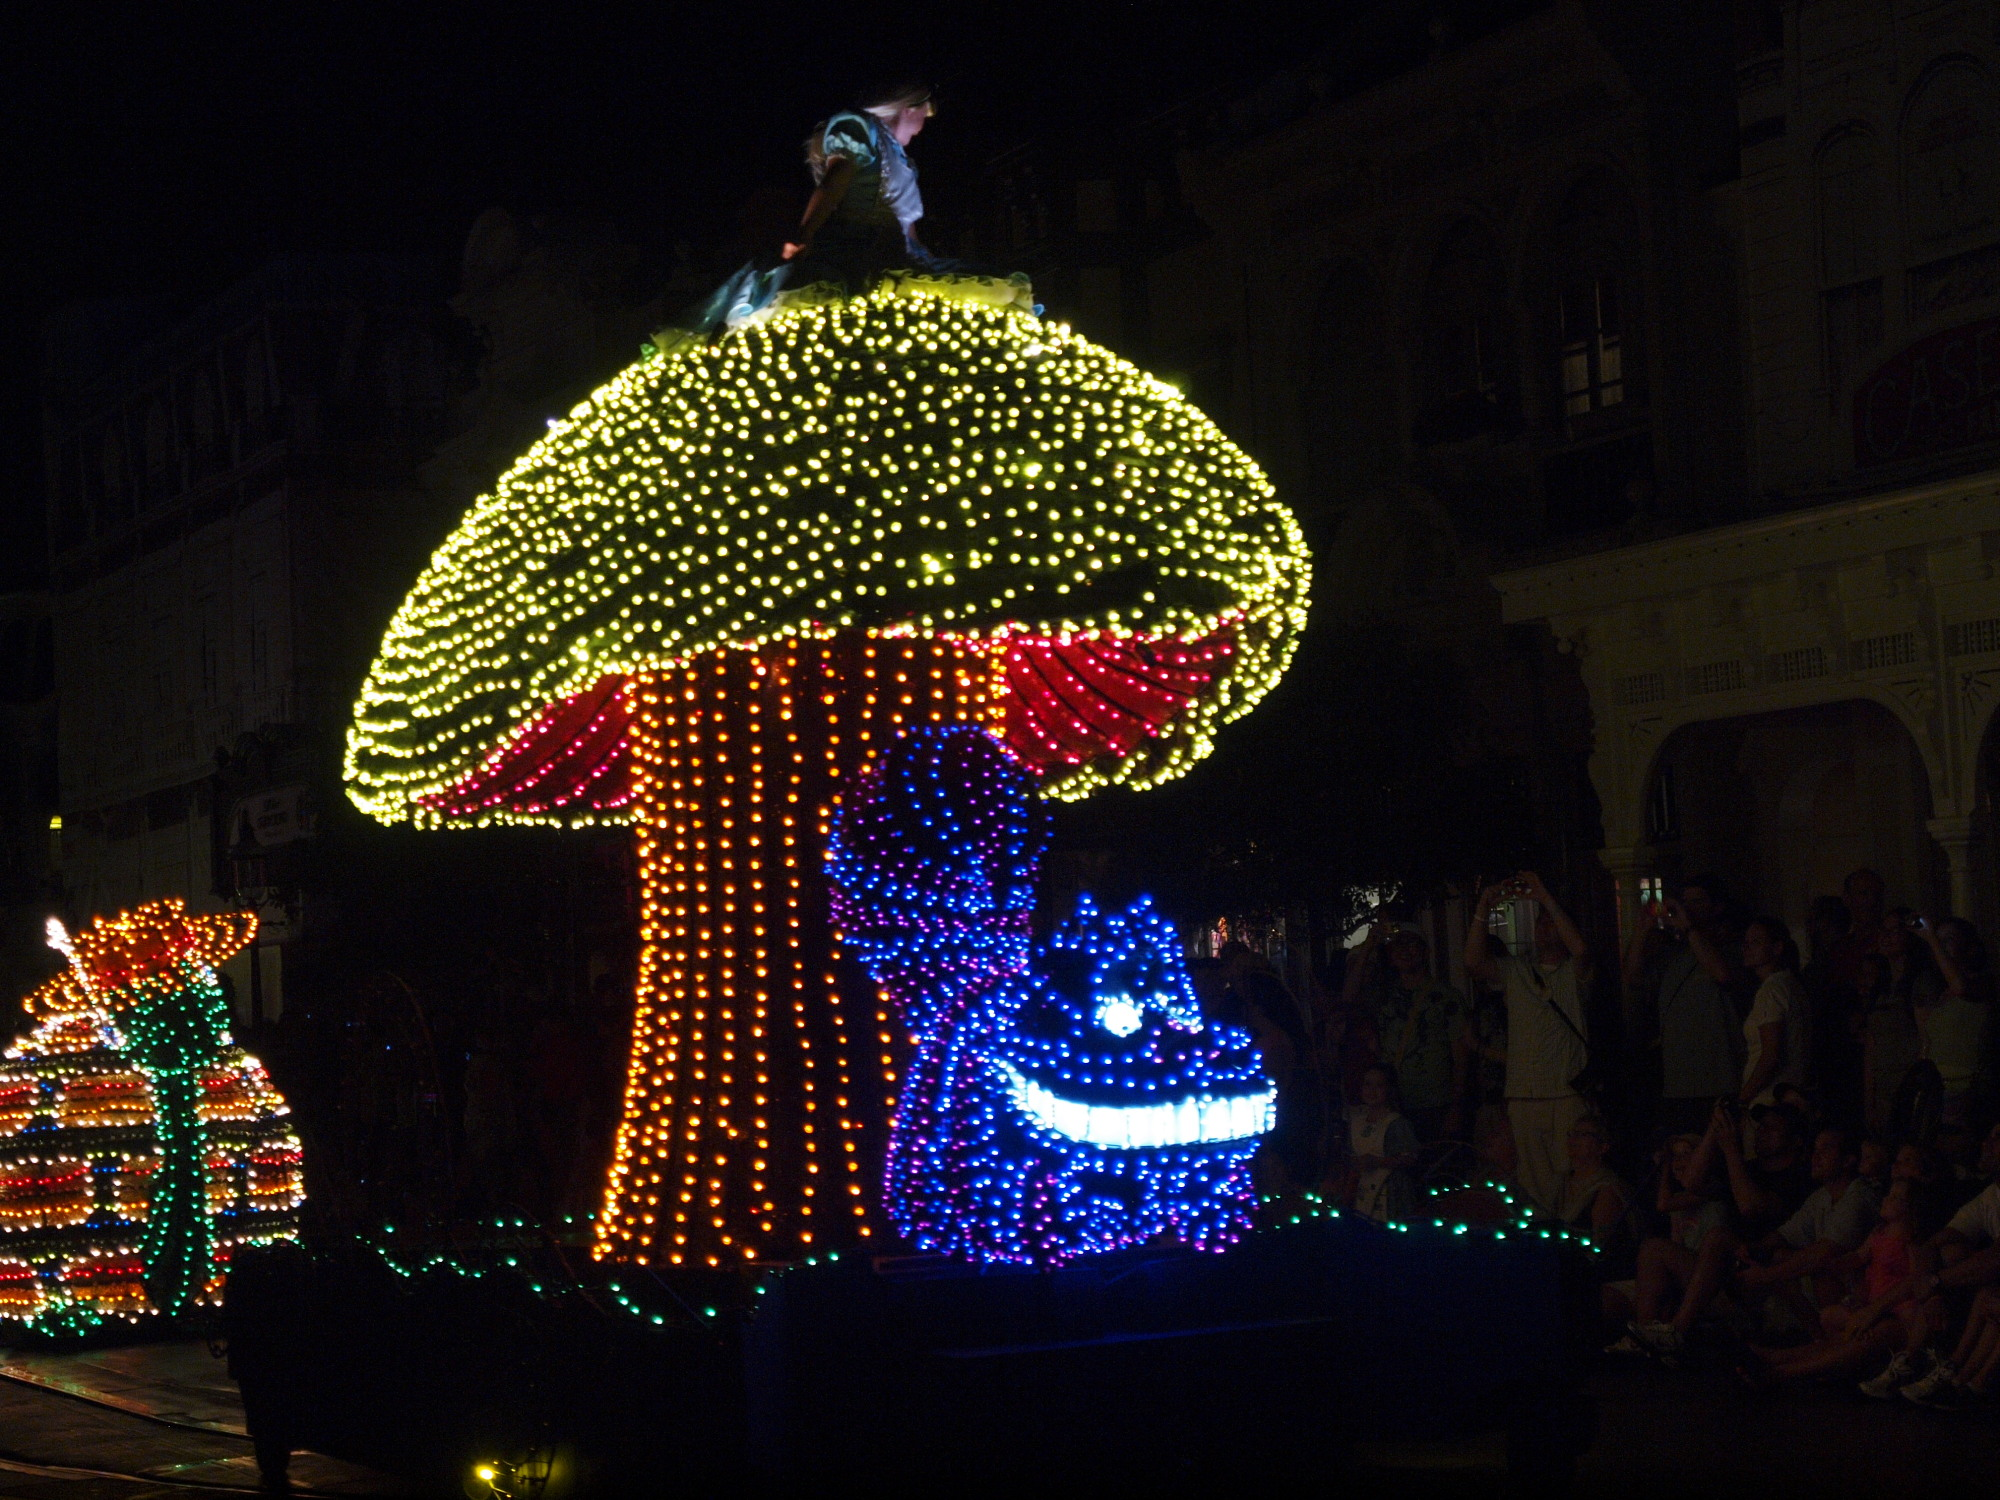 Magic Kingdom - Main Street Electrical Parade